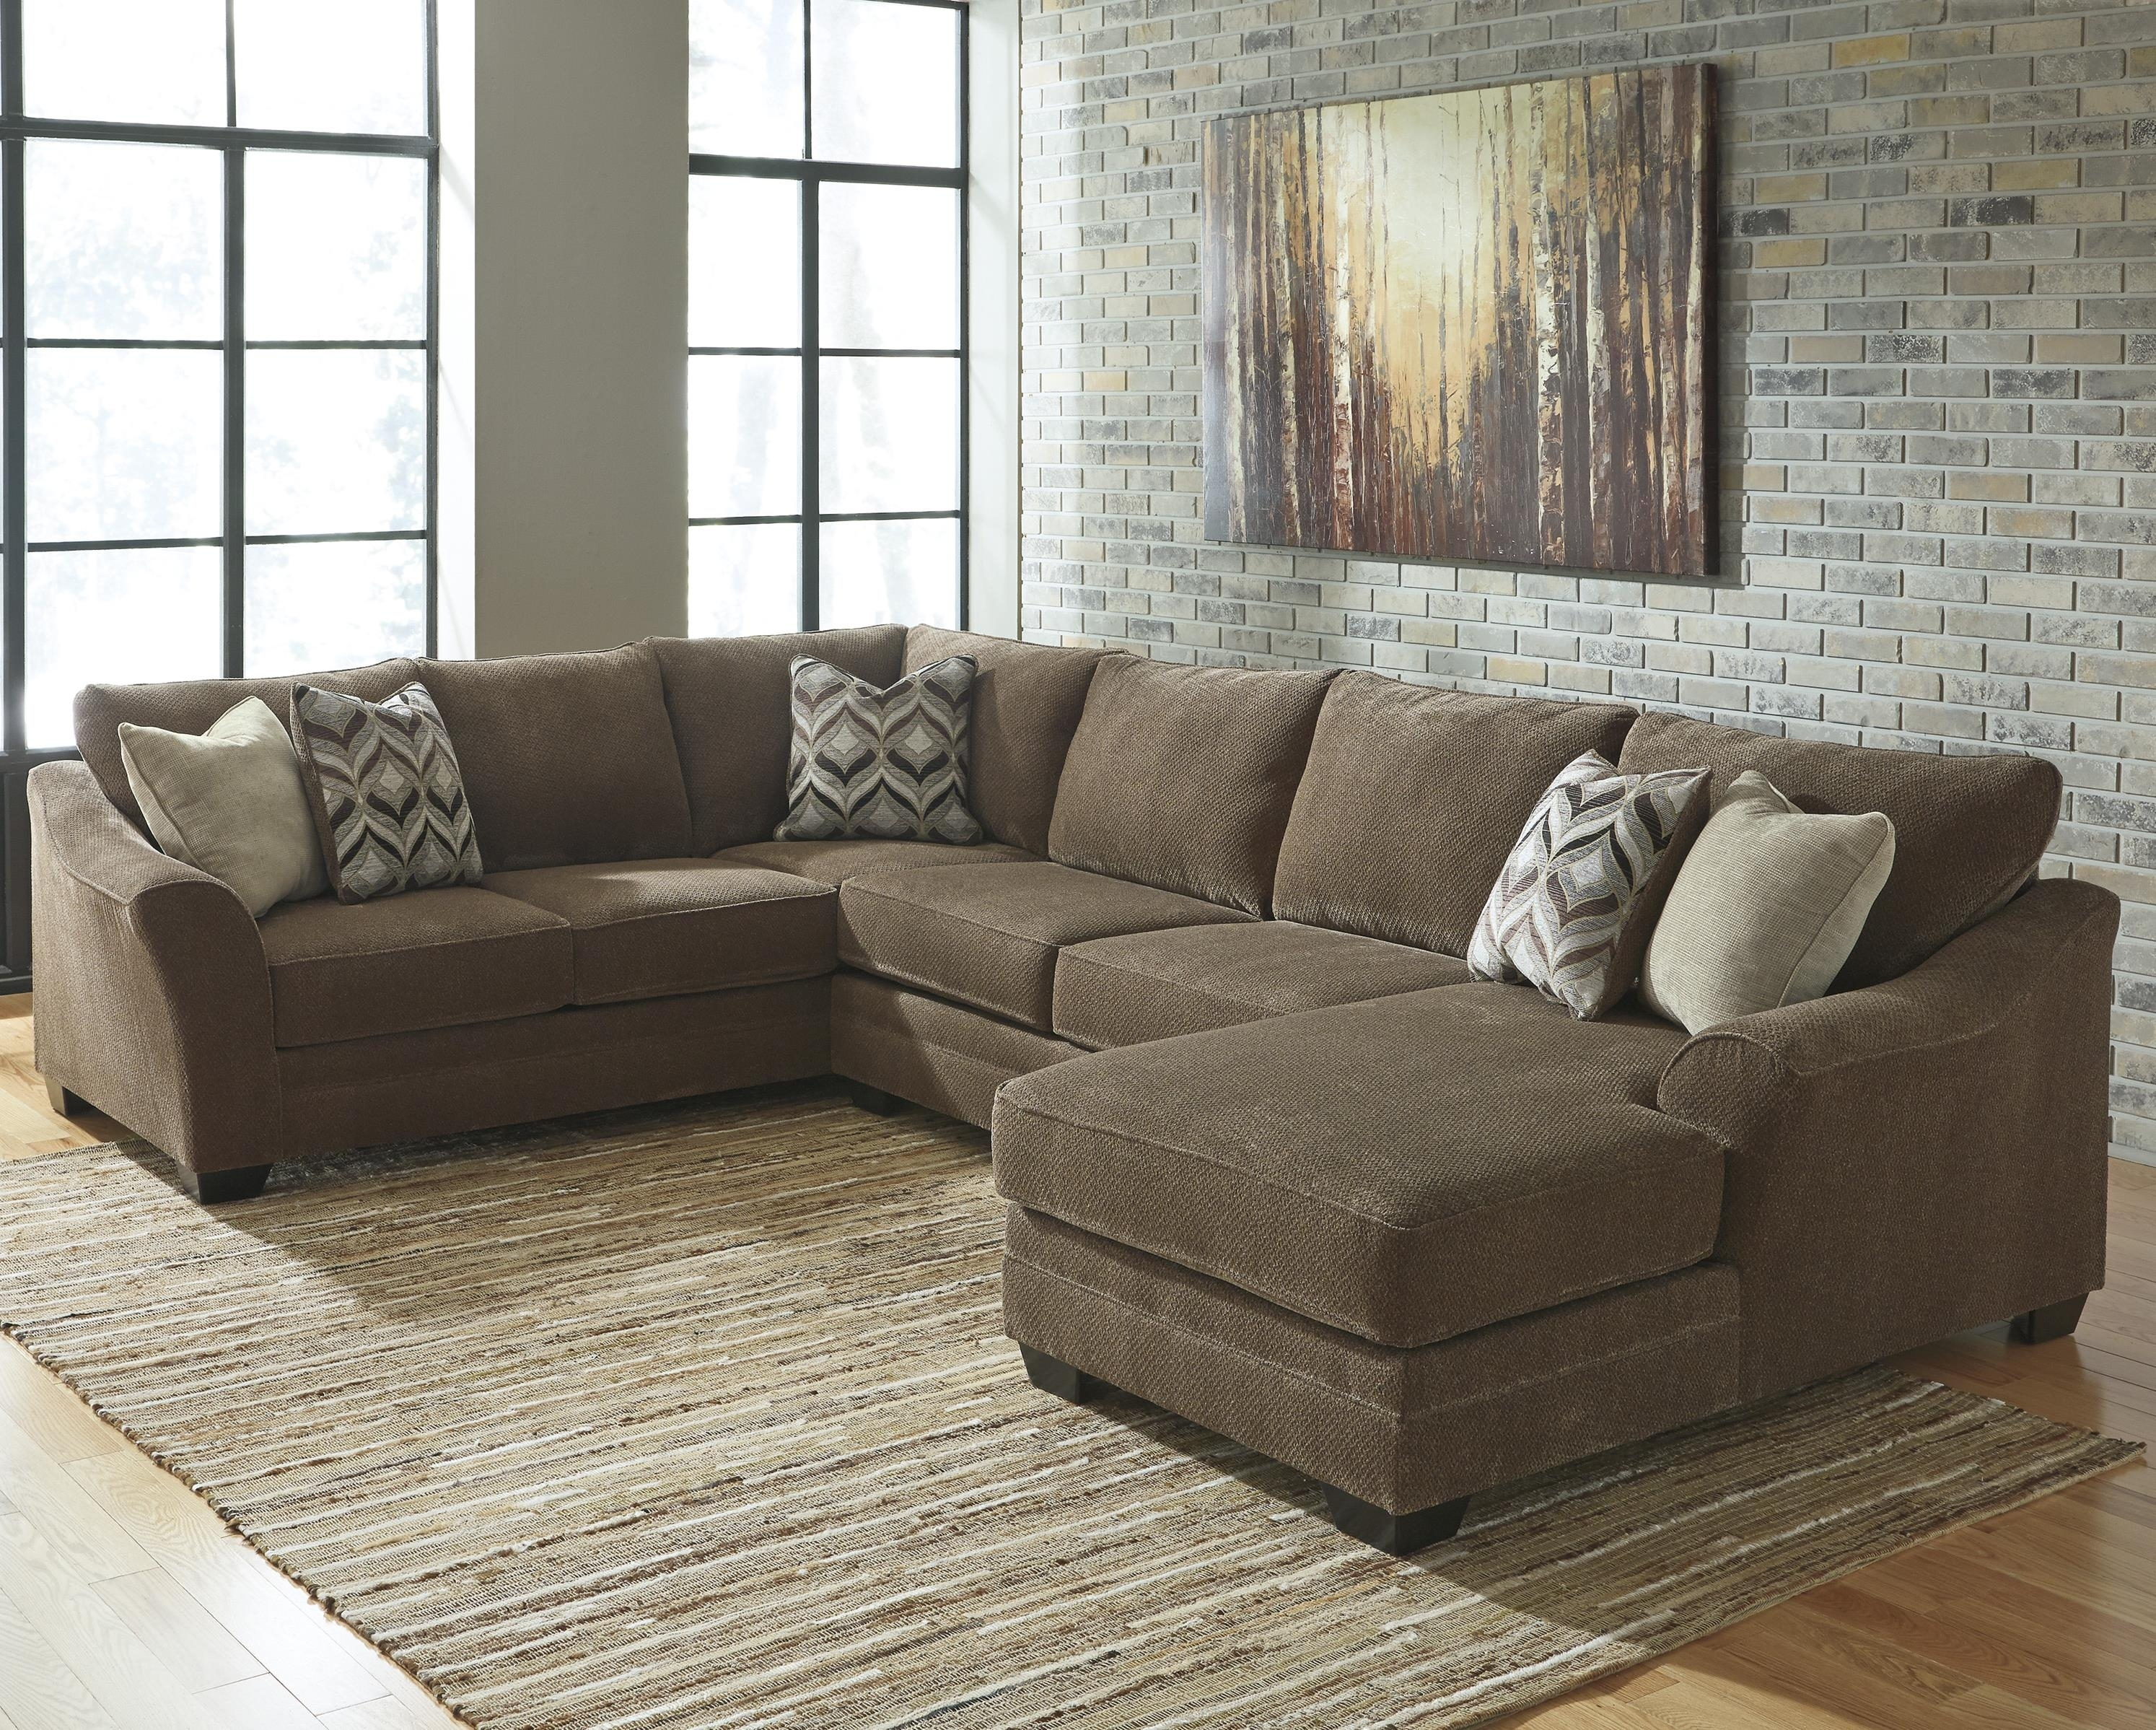 3 Piece Sectional   Locsbyhelenelorasa Within Malbry Point 3 Piece Sectionals With Laf Chaise (Photo 6 of 30)